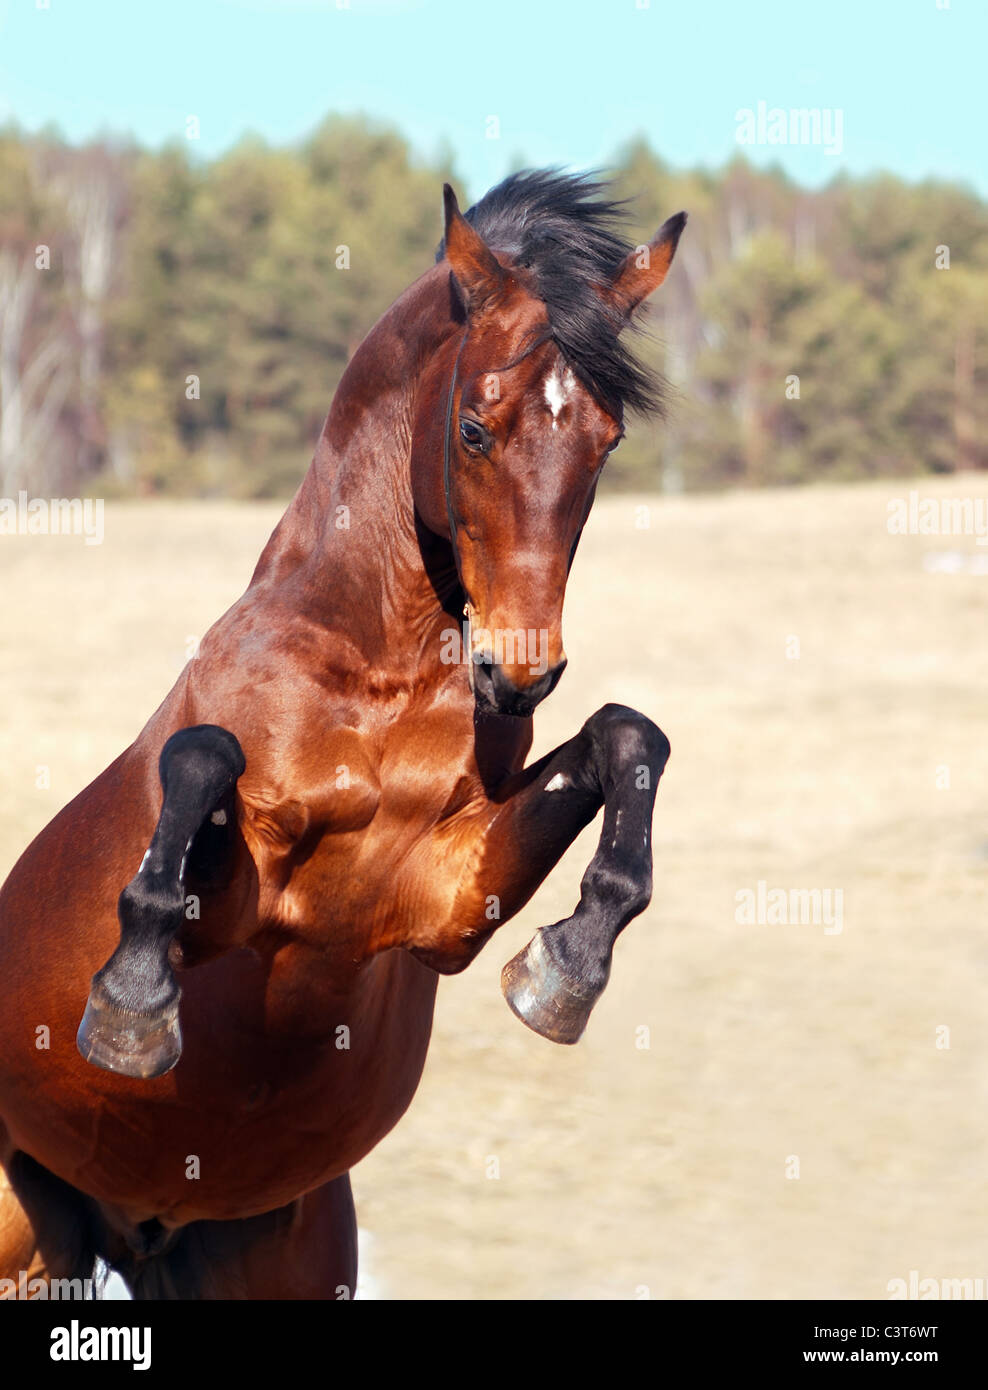 bay horse rearing in the field - Stock Image